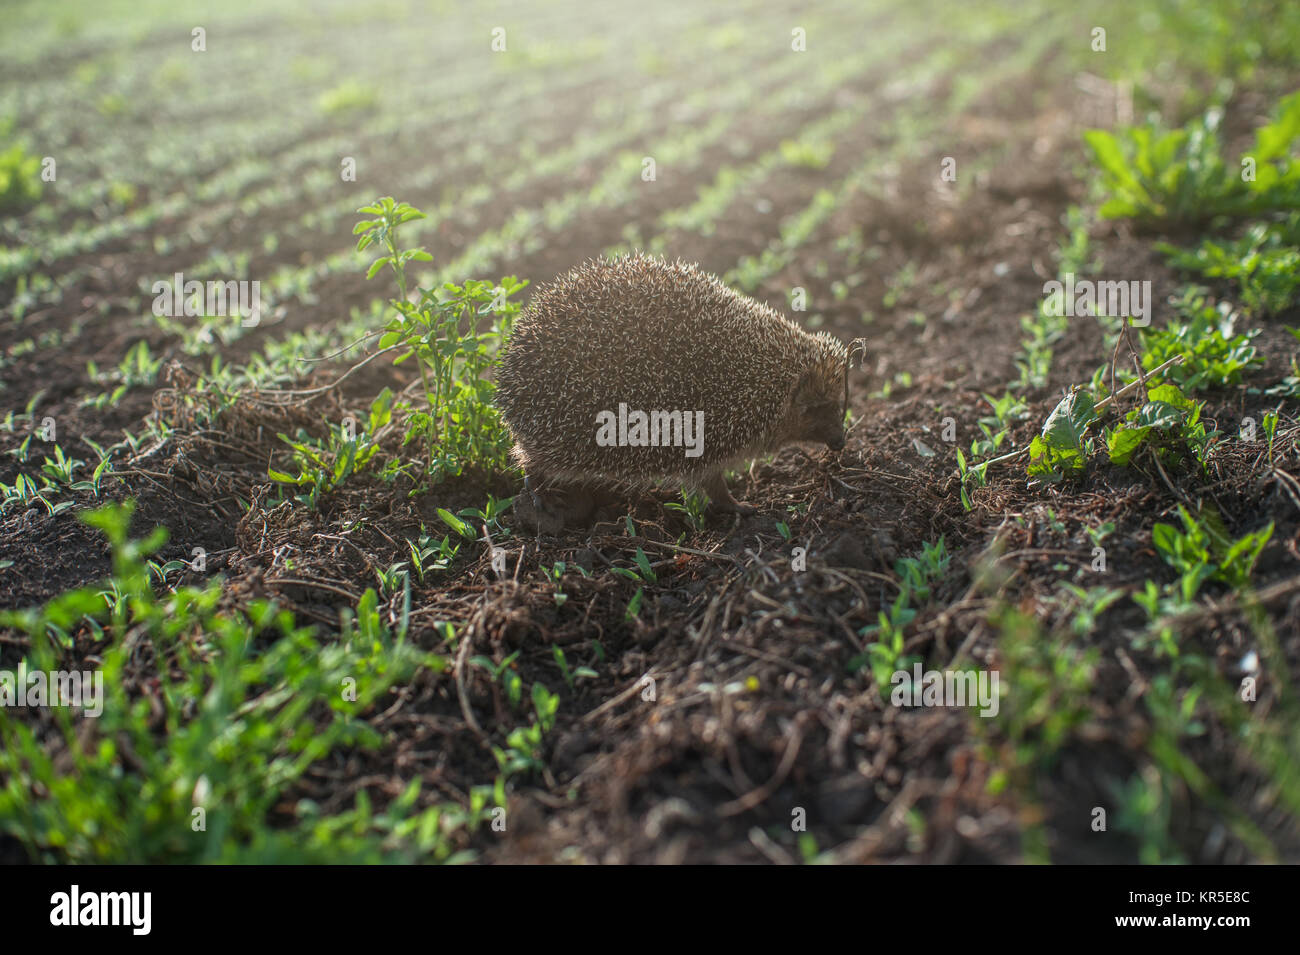 hedgehog at the field - Stock Image